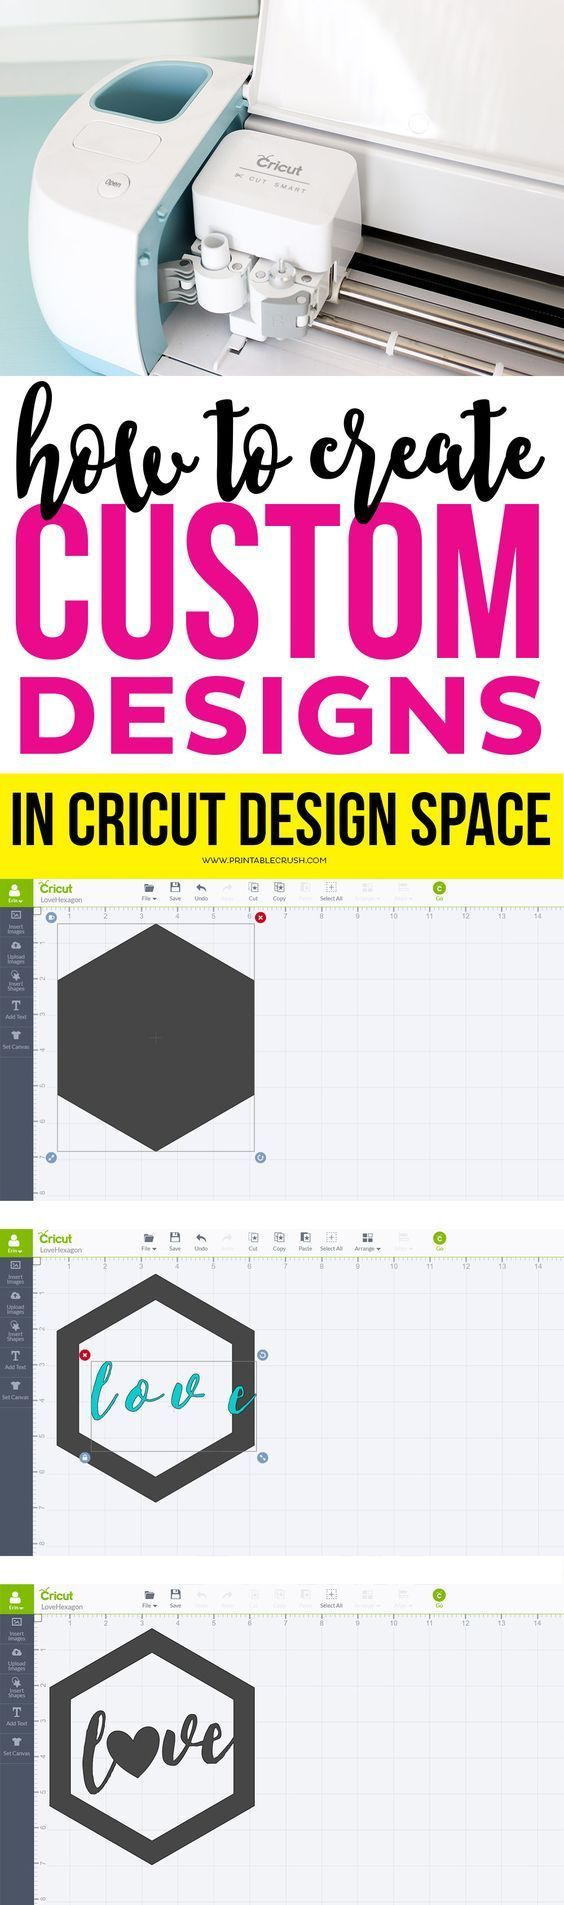 1525 best images about cricut craftiness on pinterest vinyls cute clipart and vinyl decals. Black Bedroom Furniture Sets. Home Design Ideas